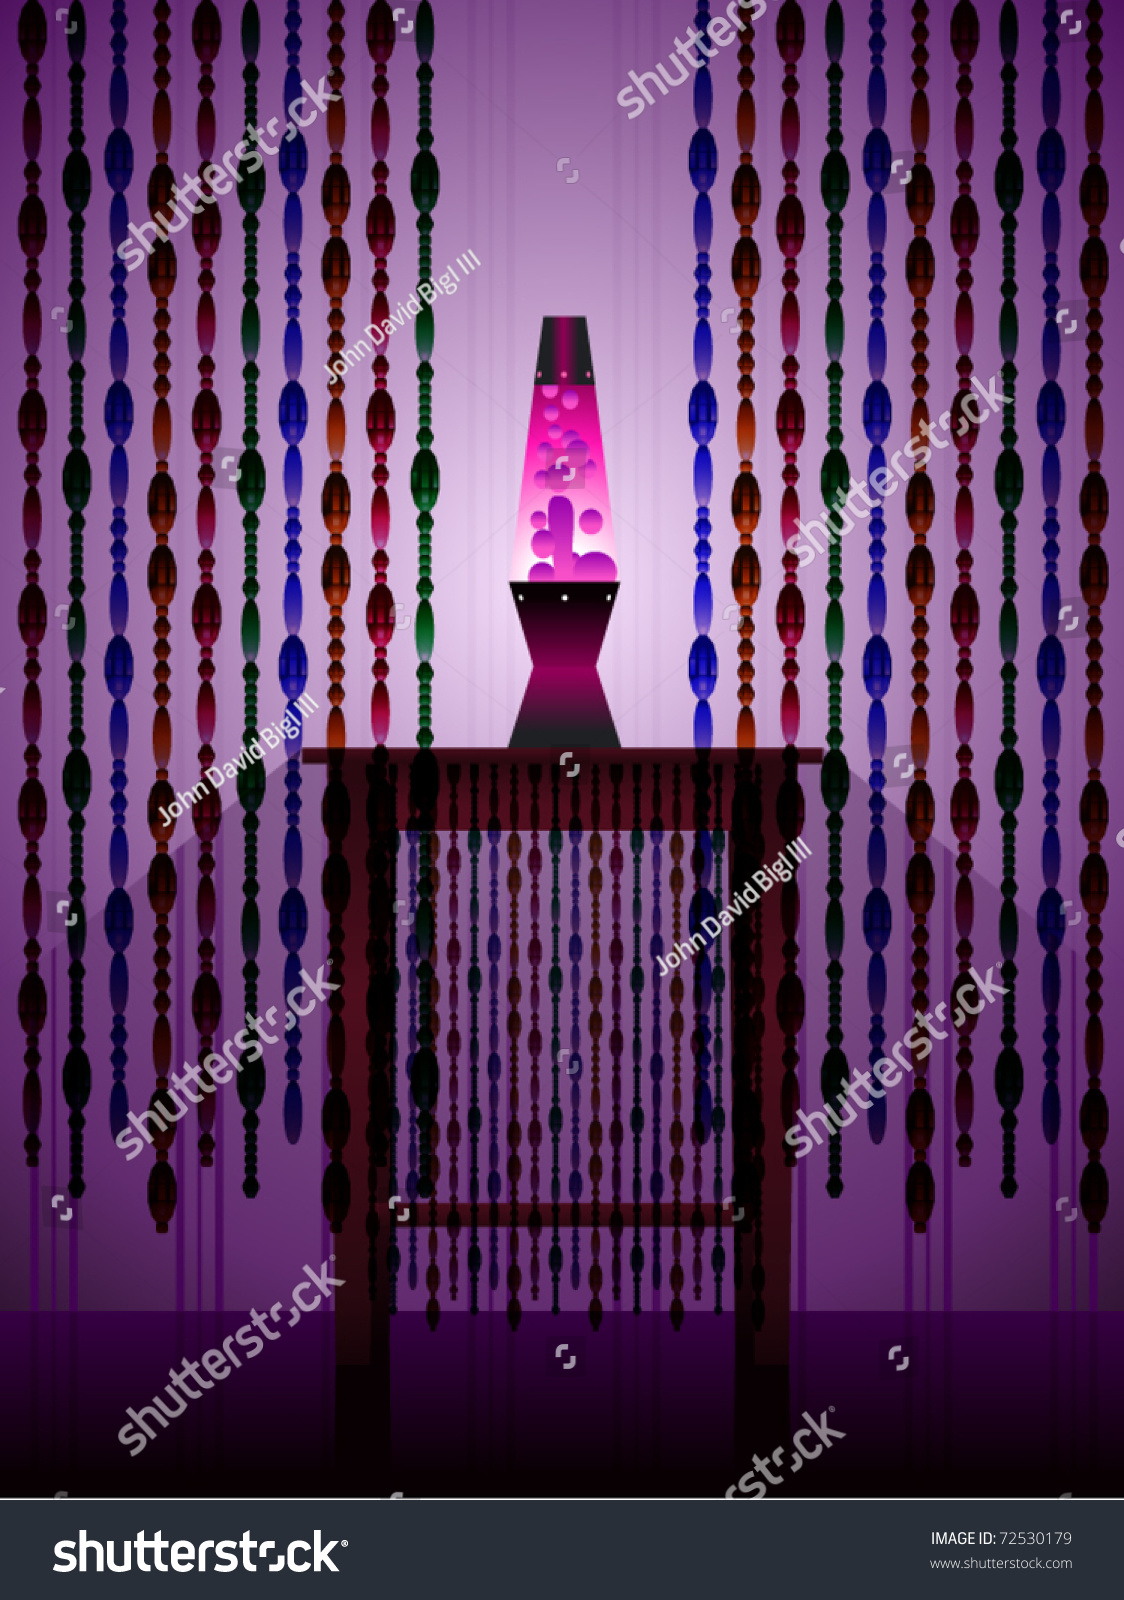 Lava lamp vector - A Retro Scene With Lava Lamp And Beaded Curtains Stock Vector Illustration 72530179 Shutterstock